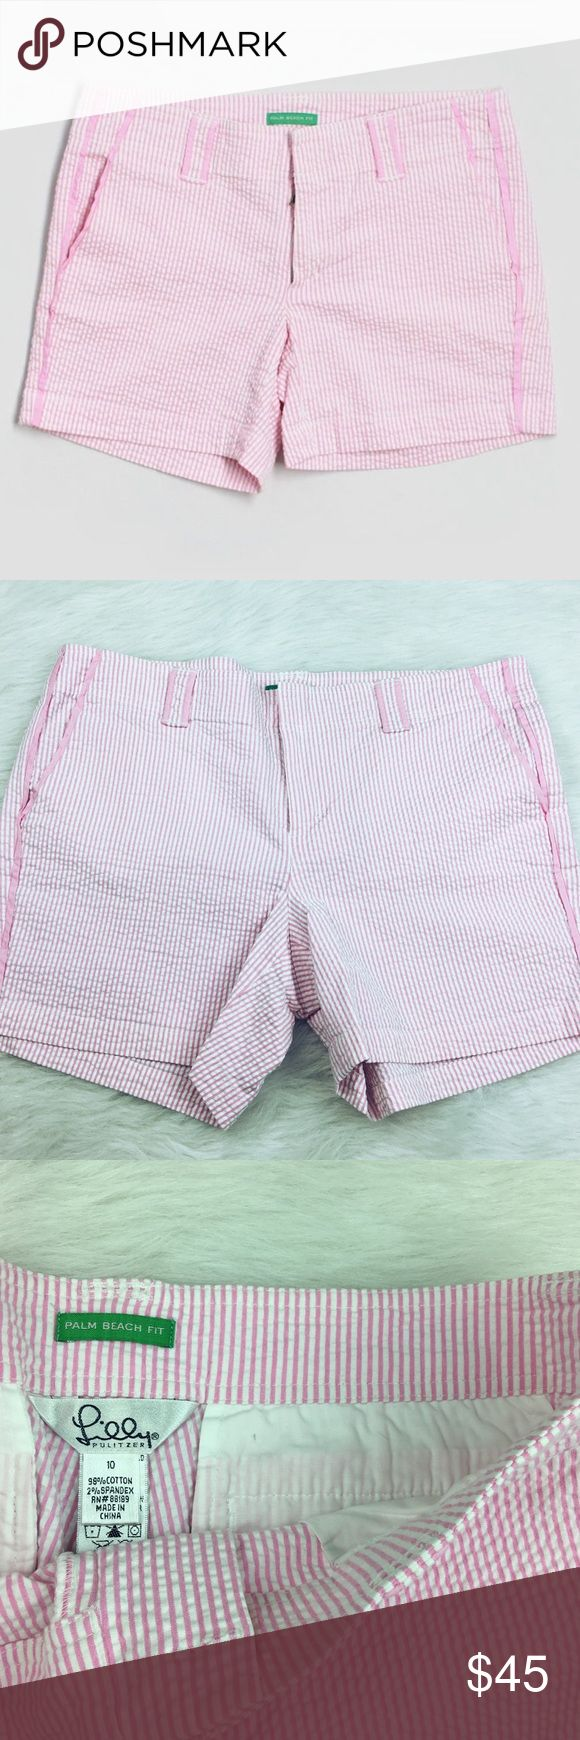 Lilly Pulitzer palm beach pink seersucker shorts Size 10. Excellent preowned condition. Like new! So adorable! Lilly Pulitzer palm beach pink seersucker shorts. Lilly Pulitzer Shorts